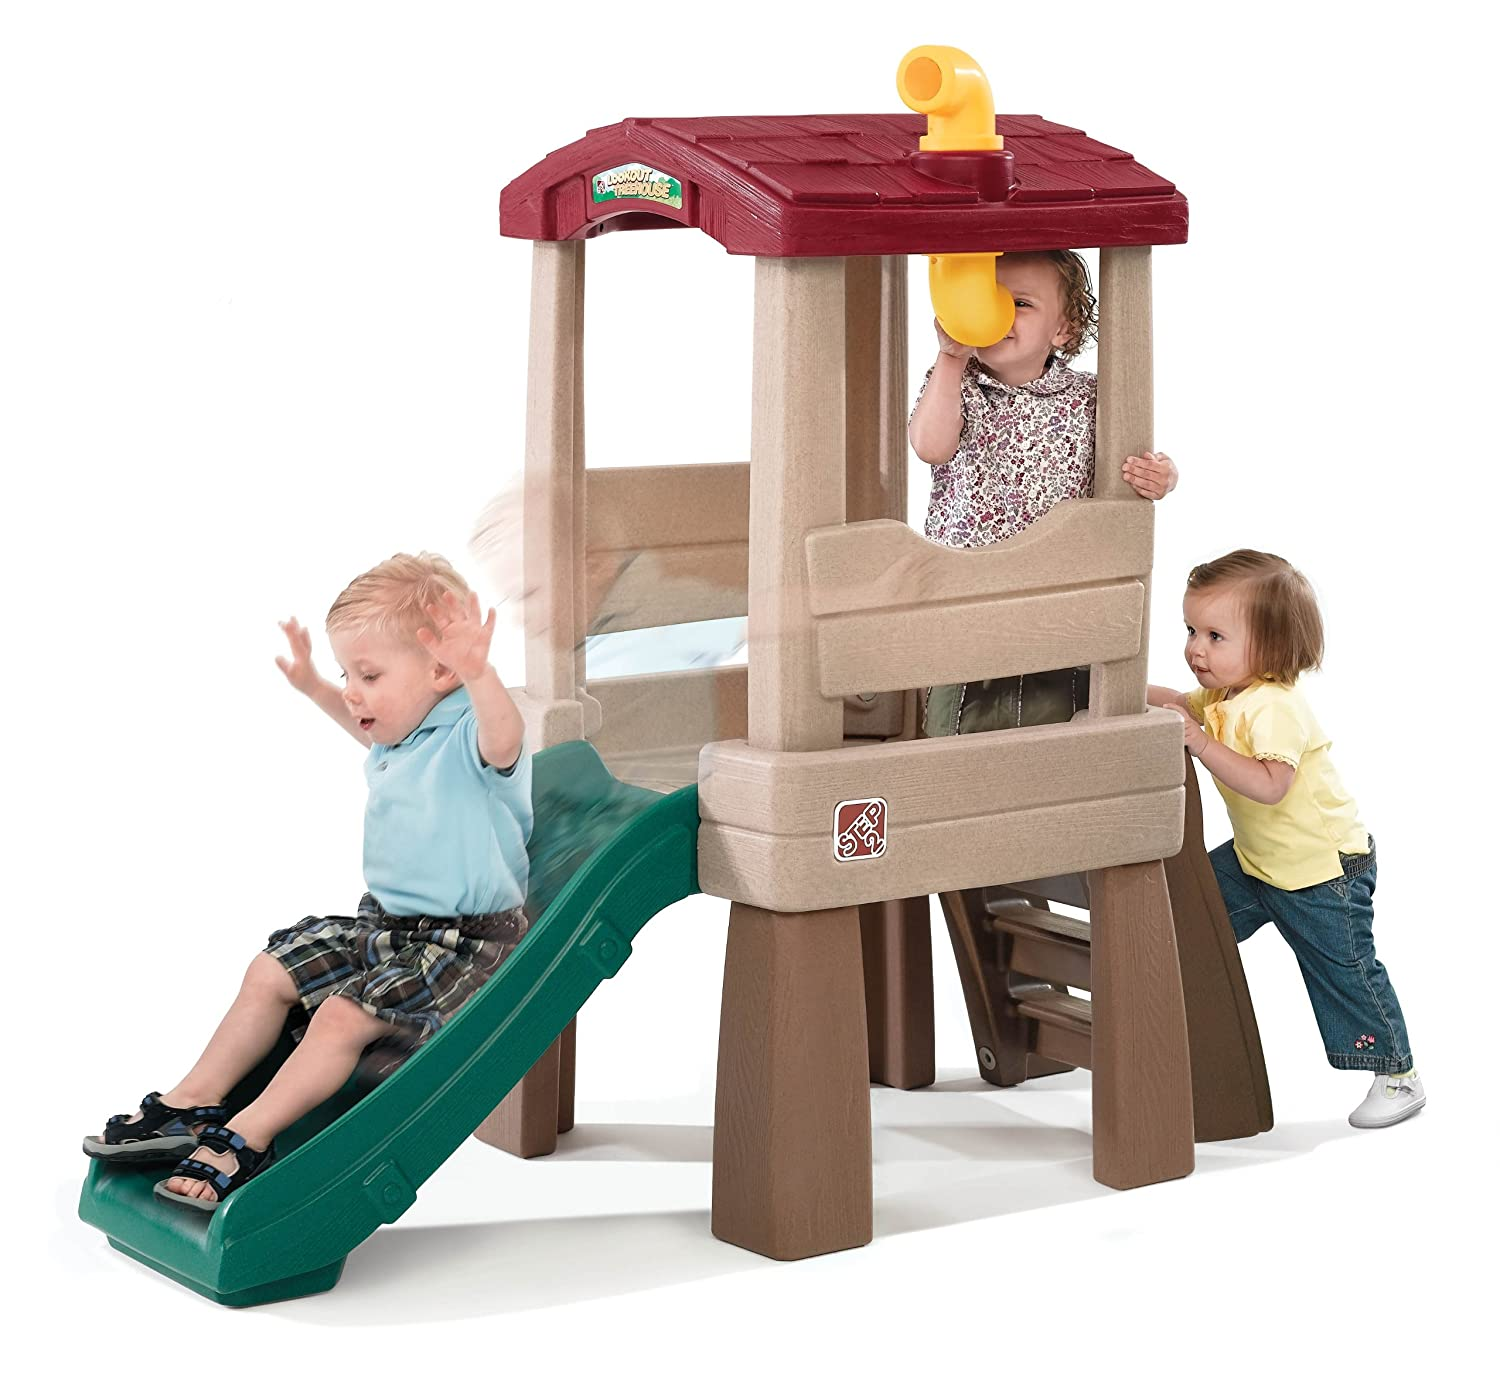 Amazon Step2 Naturally Playful Lookout Treehouse Toys & Games